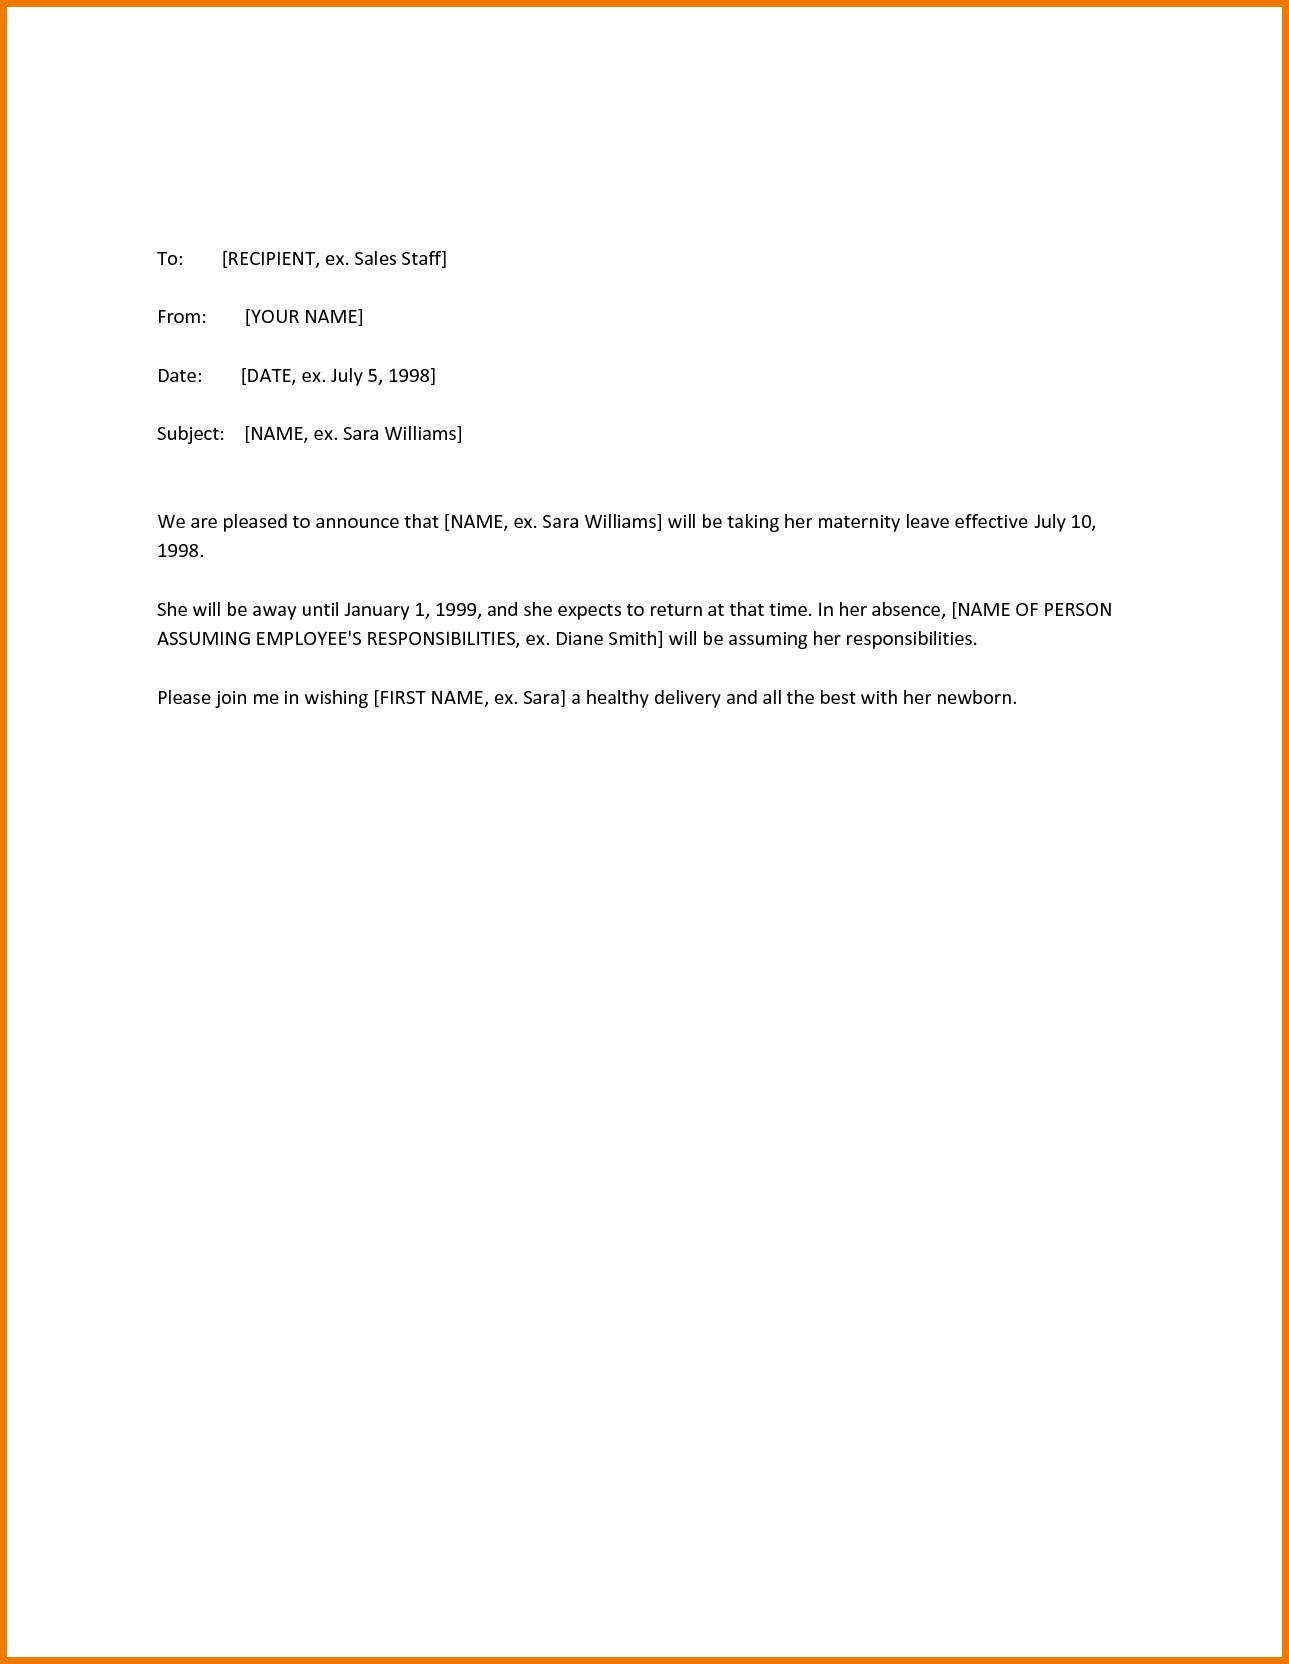 Maternity Return to Work Letter From Employer Template - Paternity Leave Letter Template Uk Best 20 New Letter Template